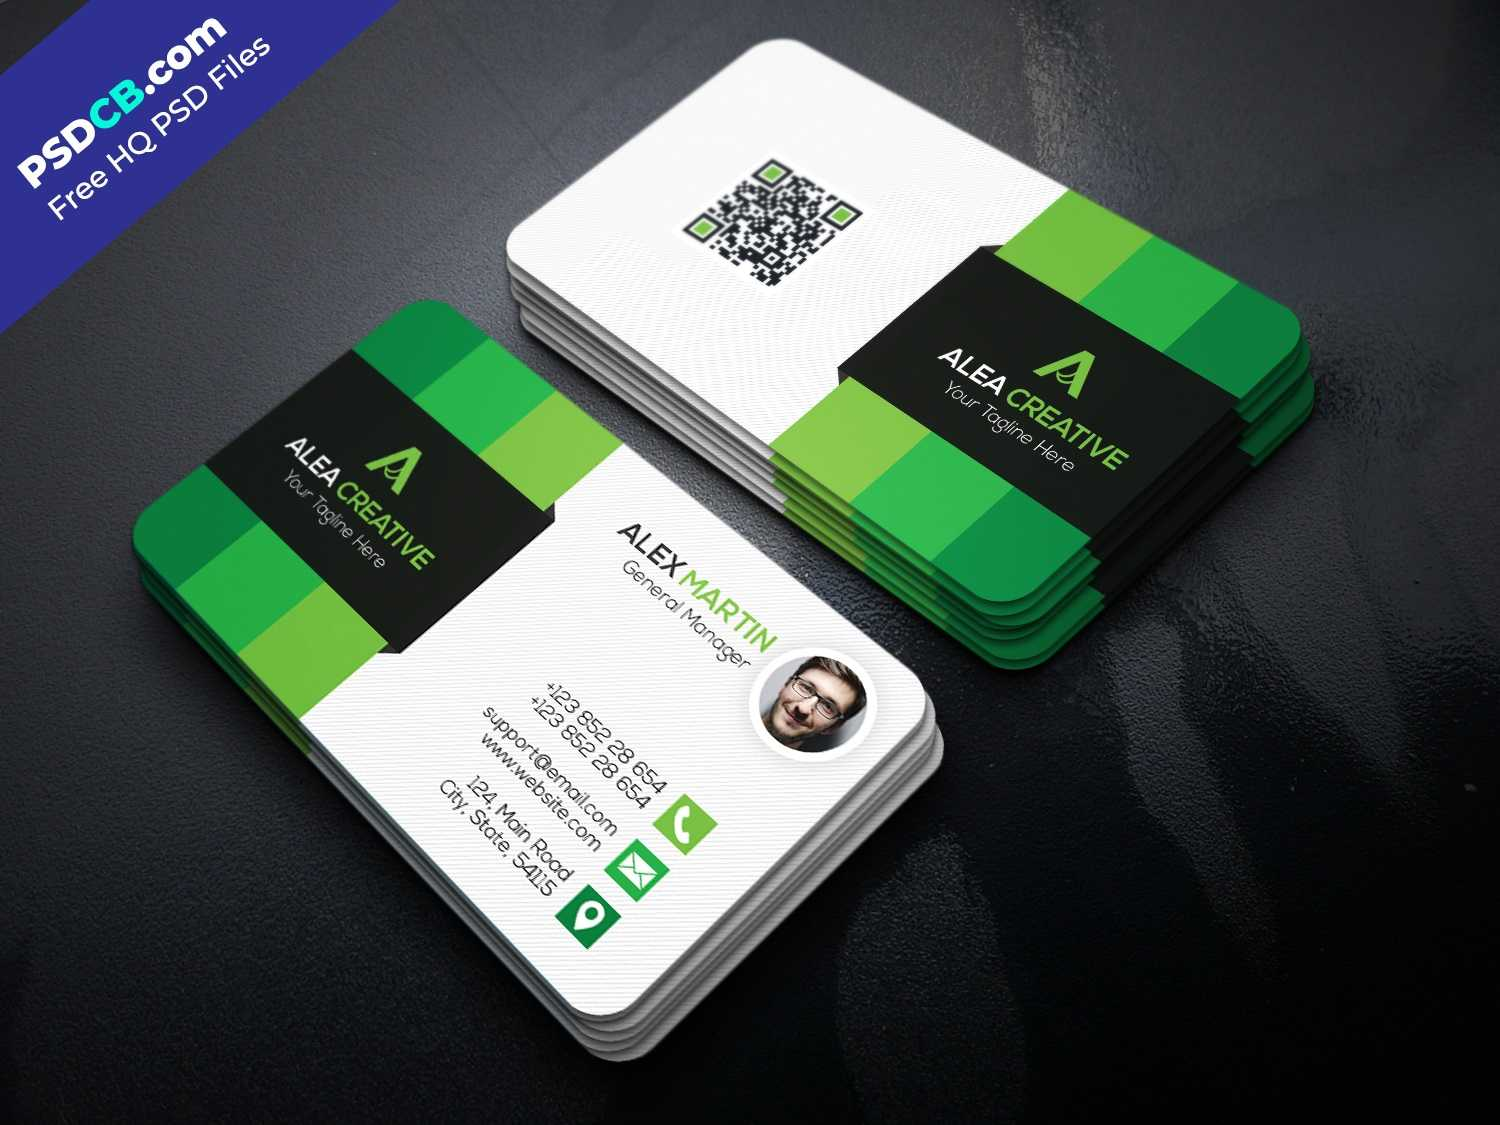 Download Free Modern Business Card Template Psd Set - Psdcb intended for Free Psd Visiting Card Templates Download